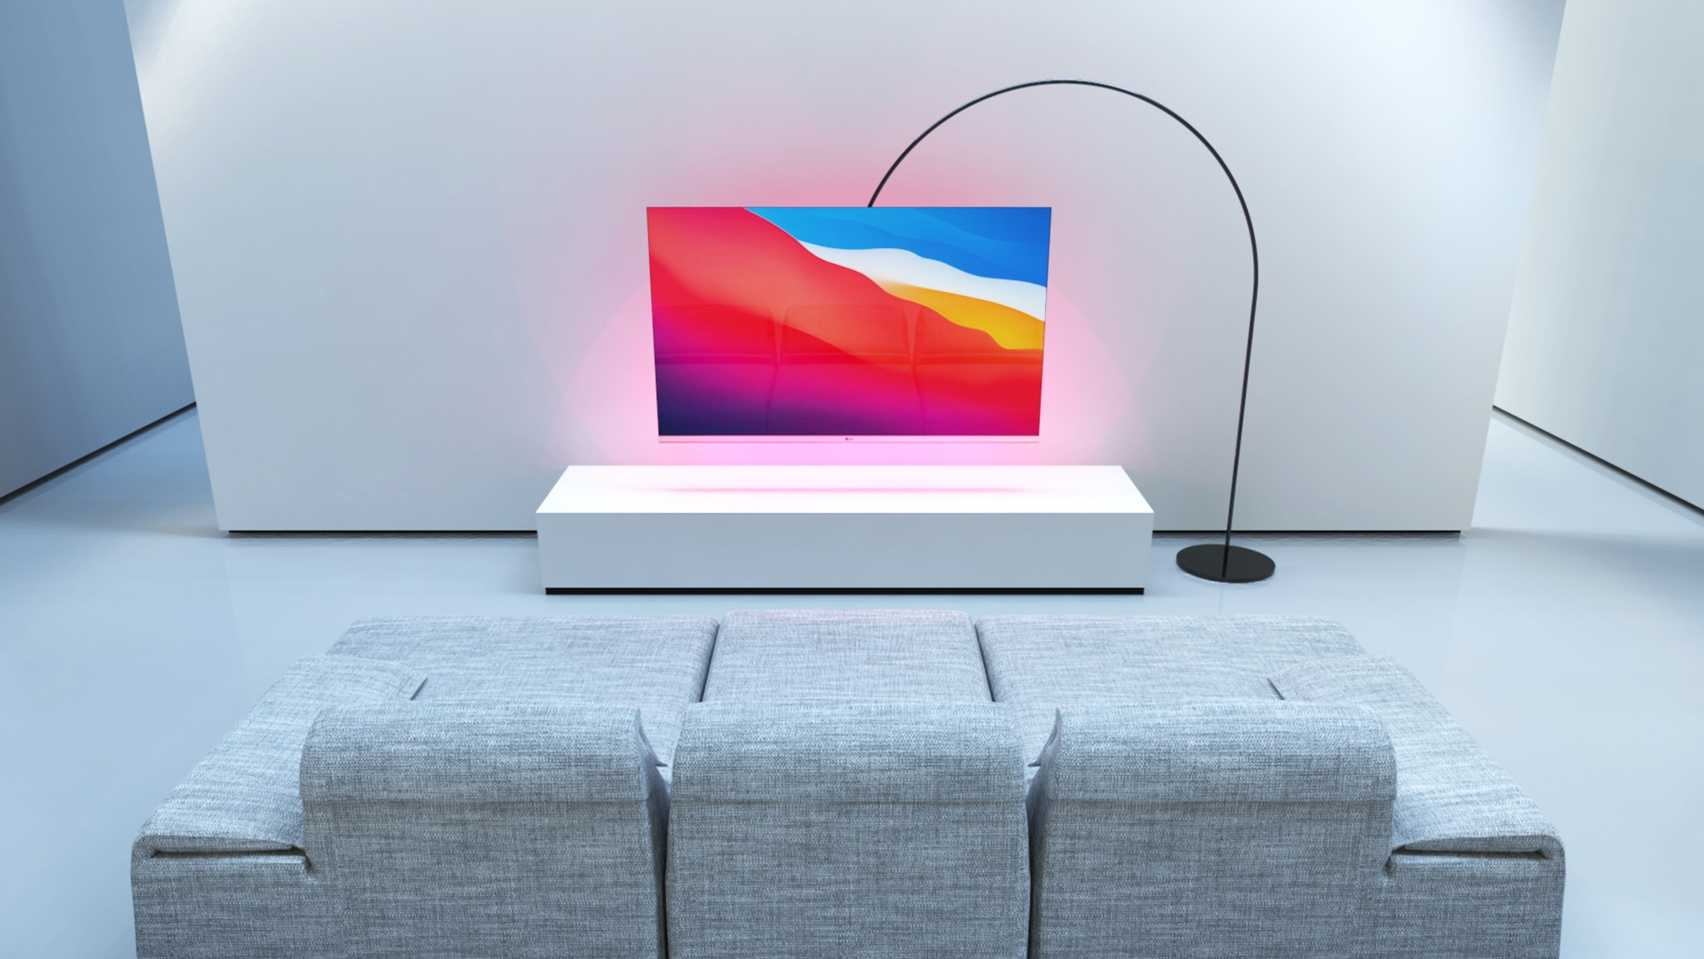 UcmaG by Sedat Özer suspended screen for Dezeen and LG Display's OLED Go Competition